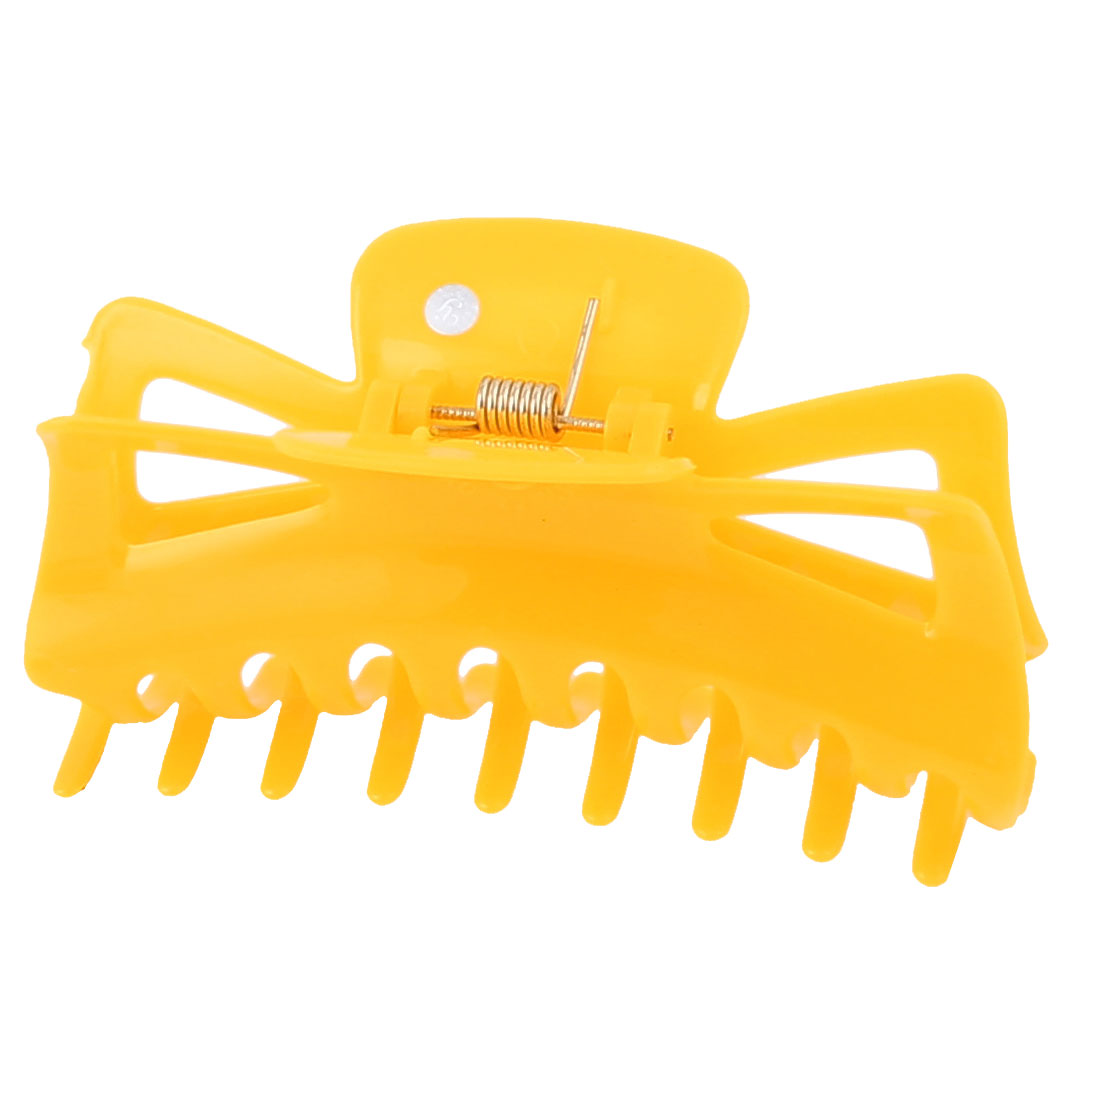 Plastic Spring Loaded Toothed Claw Hairclip DIY Hairstyle Hair Clip Yellow